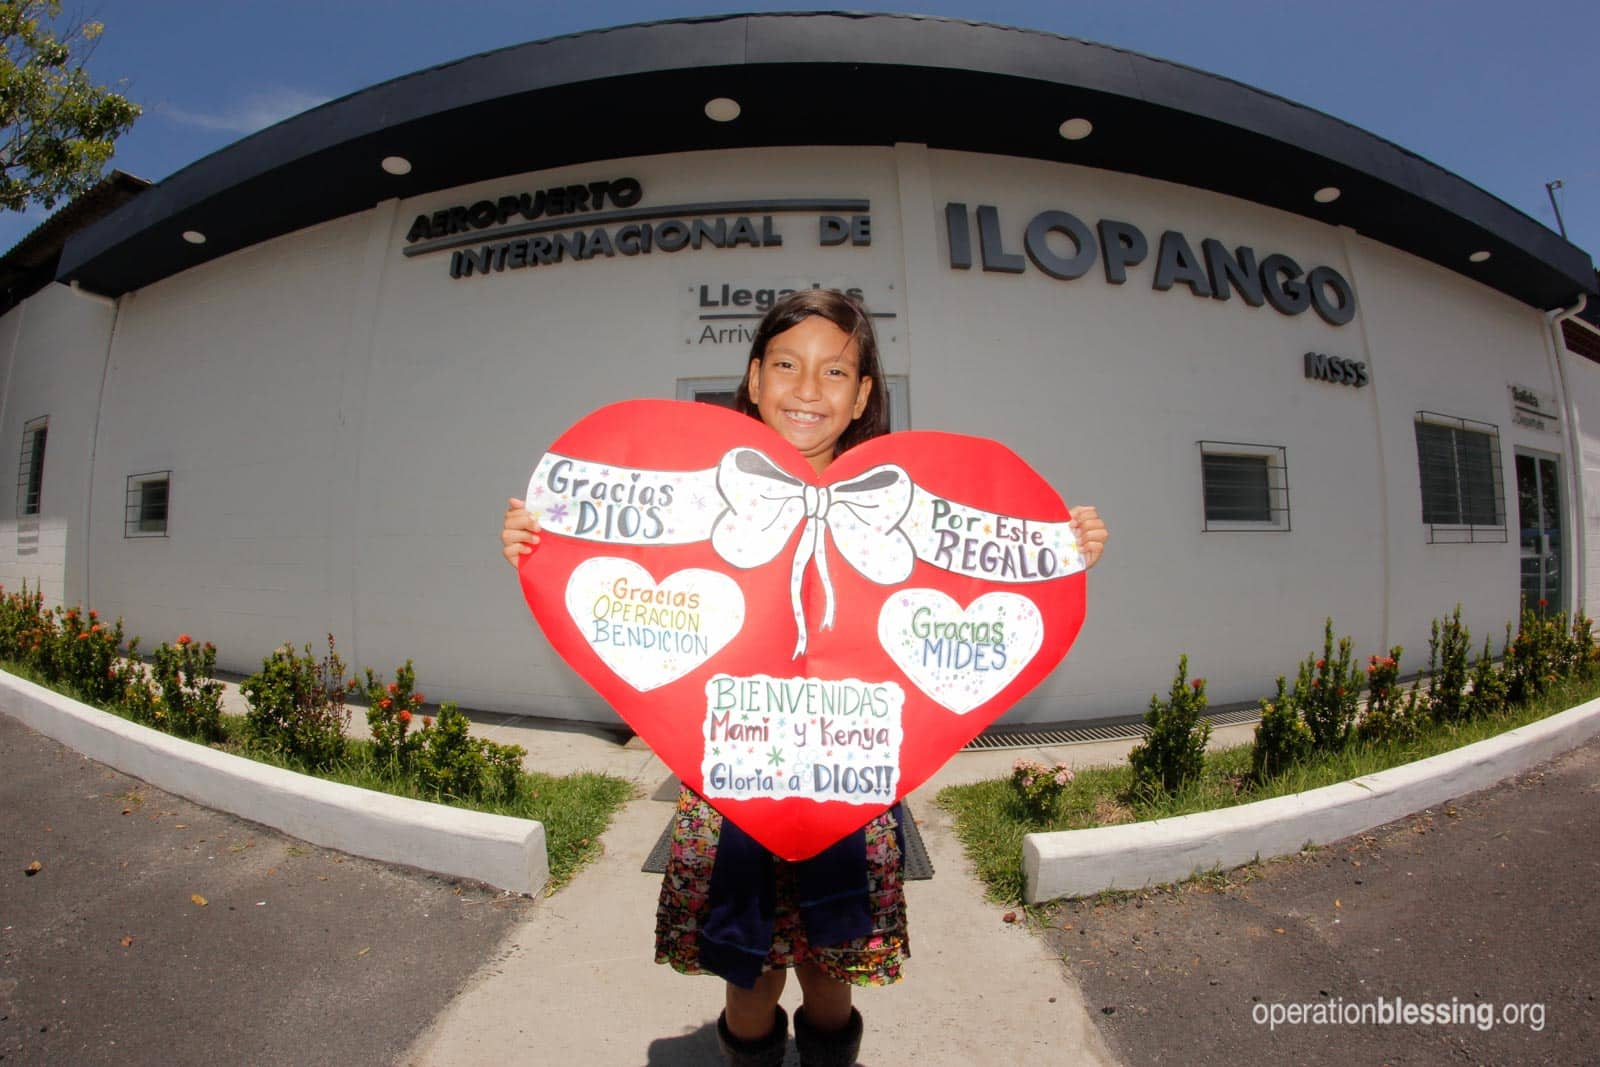 Kenya holds up a thank you sign shaped like a heart after her heart surgery.